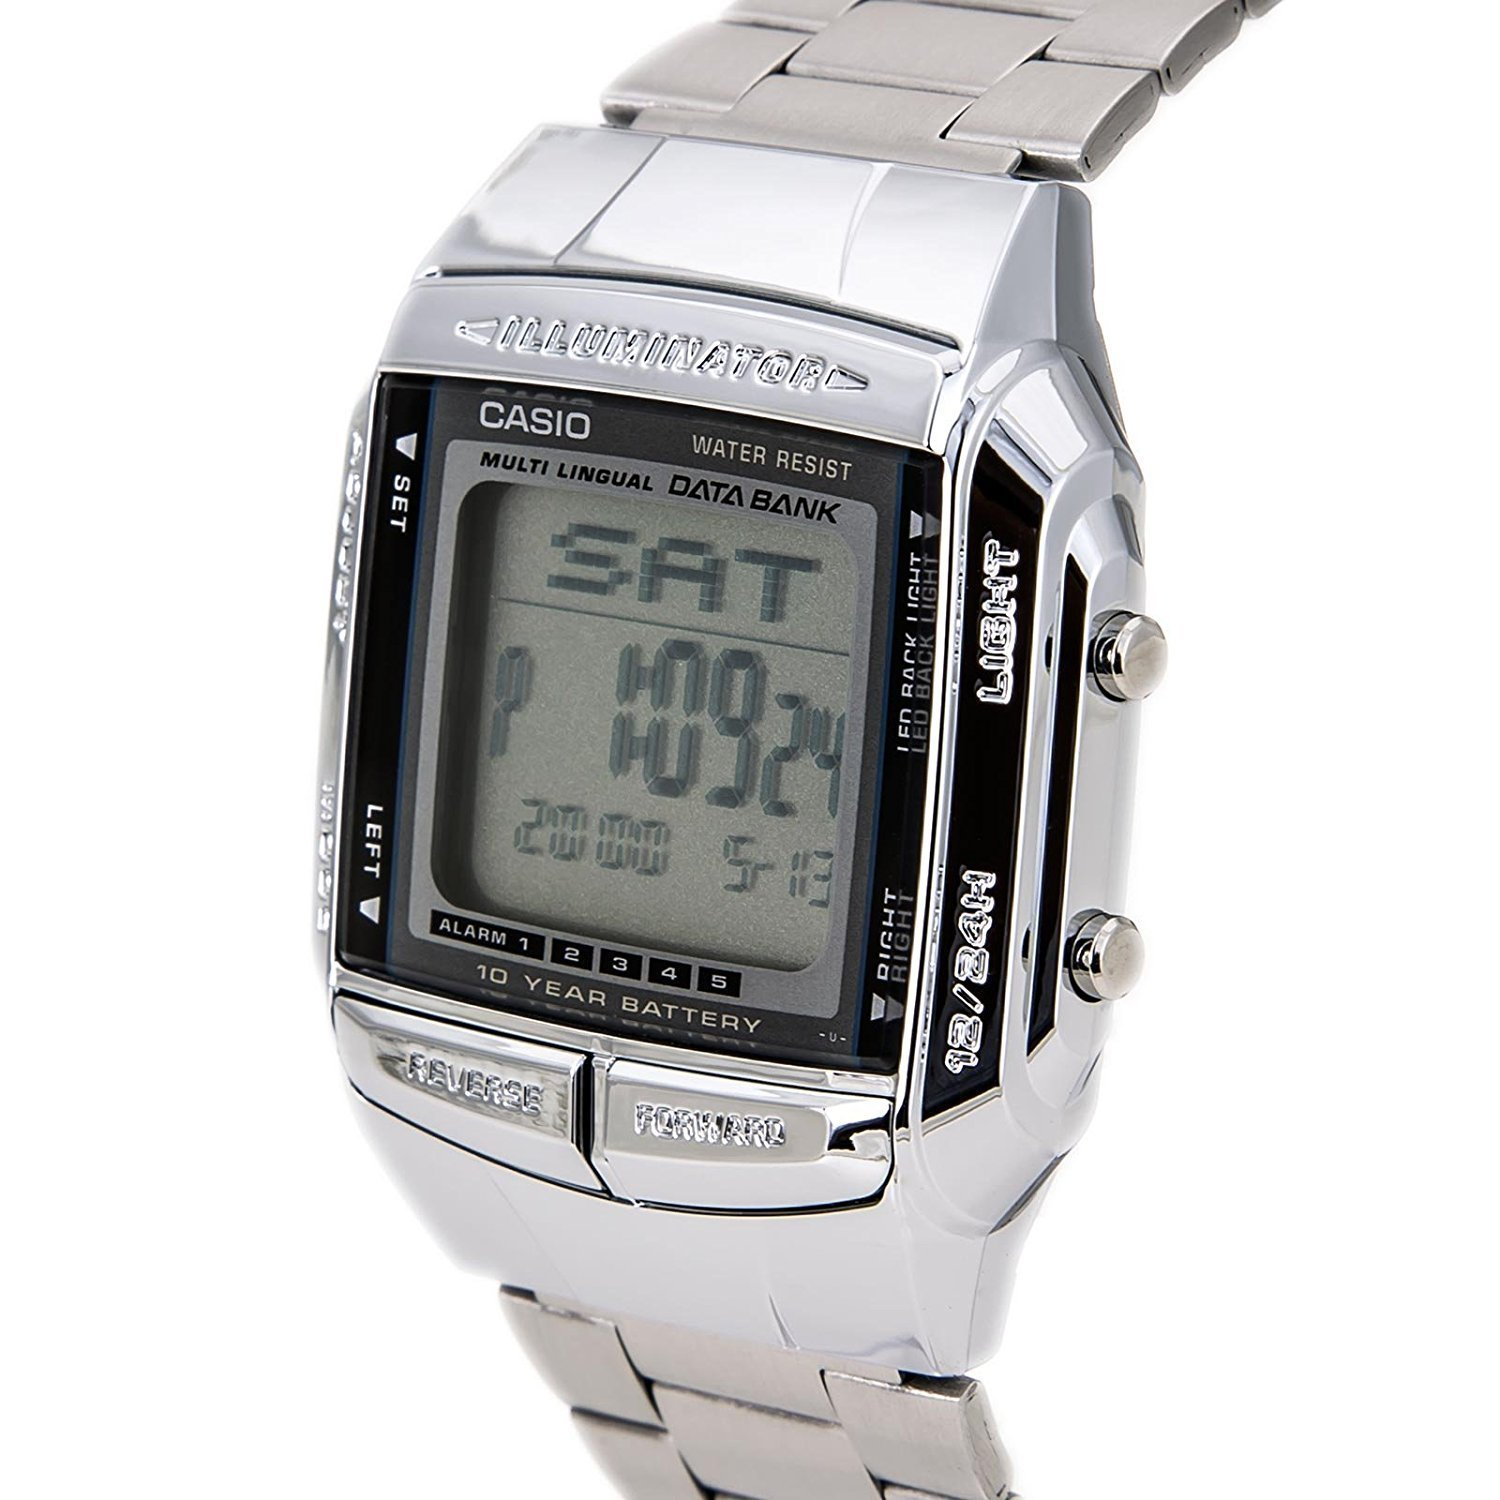 Amazon.com: CASIO - Mens Watches - CASIO Collection Retro - Ref. DB-360N-1AEF: Watches